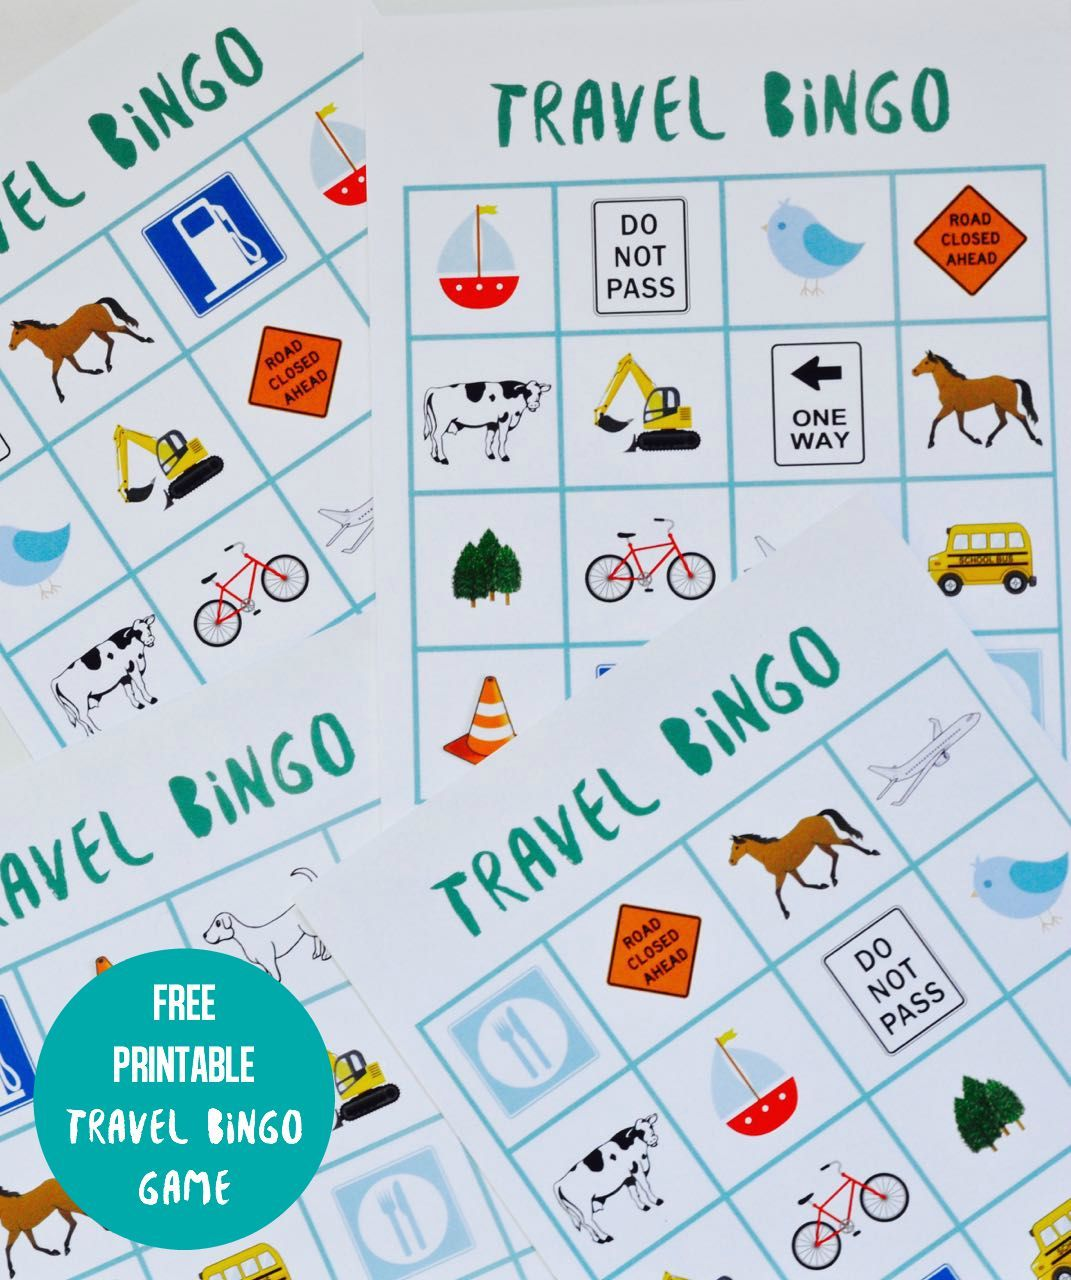 This is an image of Stupendous Travel Bingo Cards